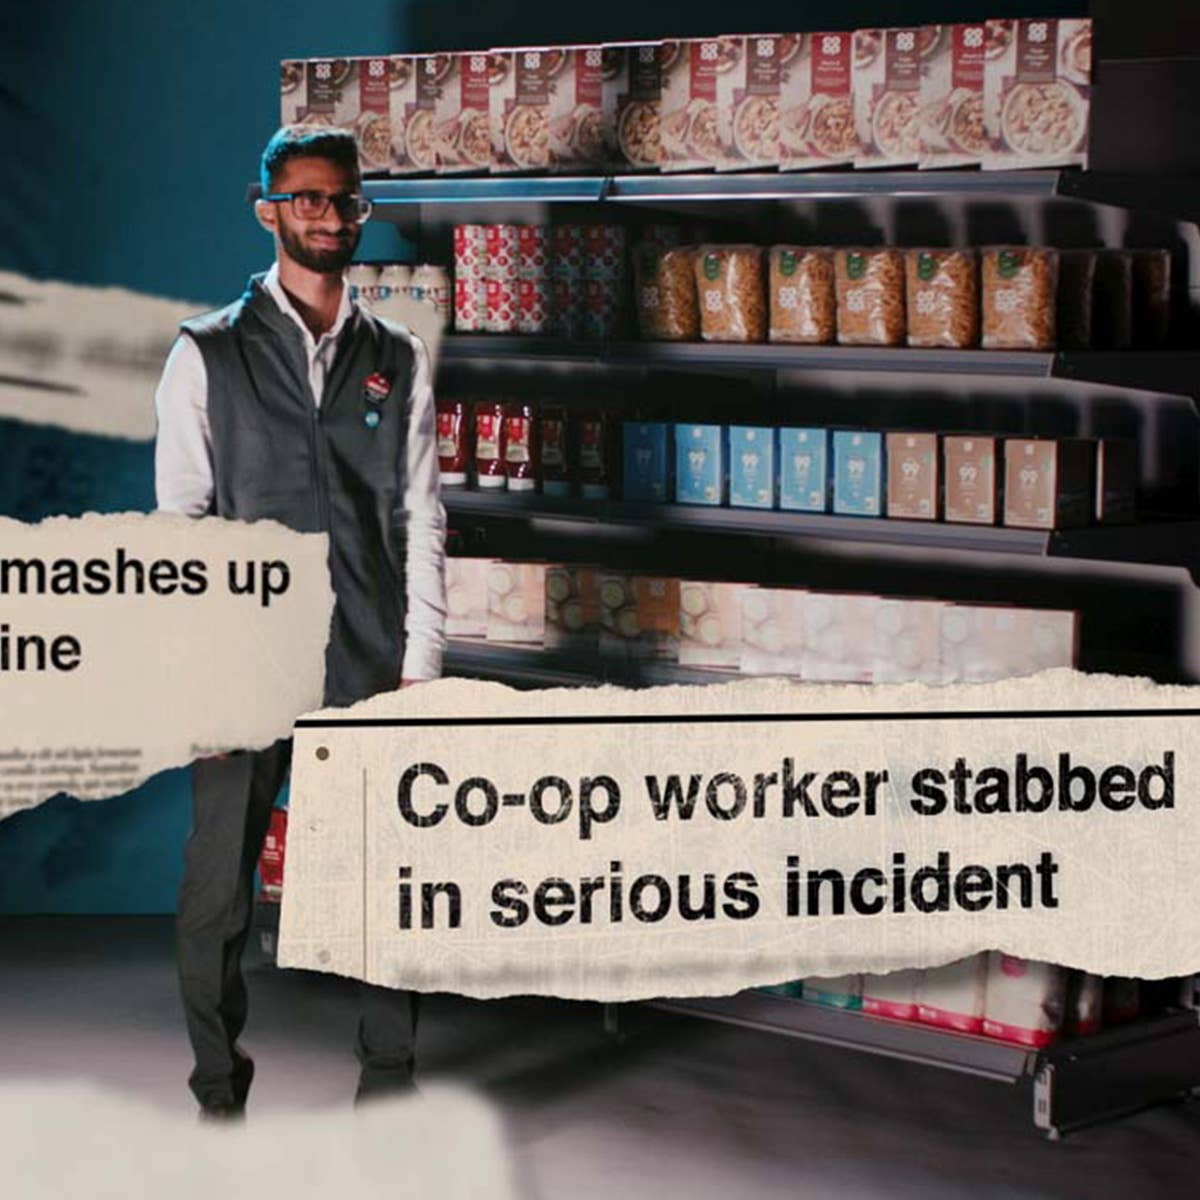 C4 teams up with Co-op for ad break highlighting abuse of shop workers